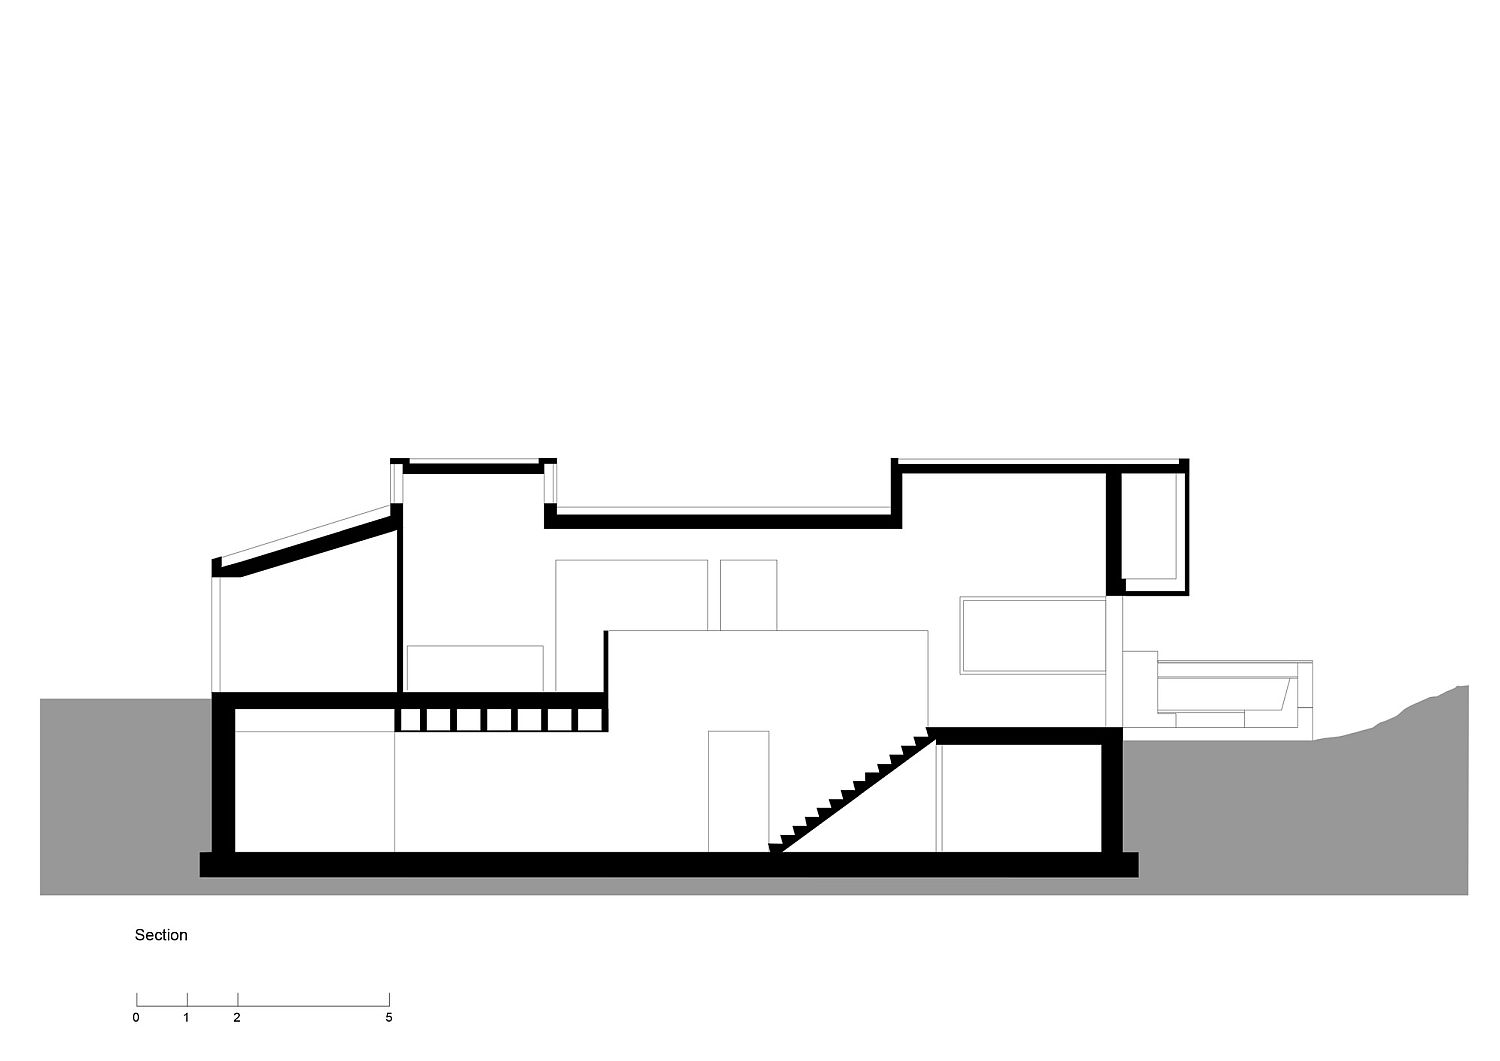 Sectional view of the Holday House in Netherlands